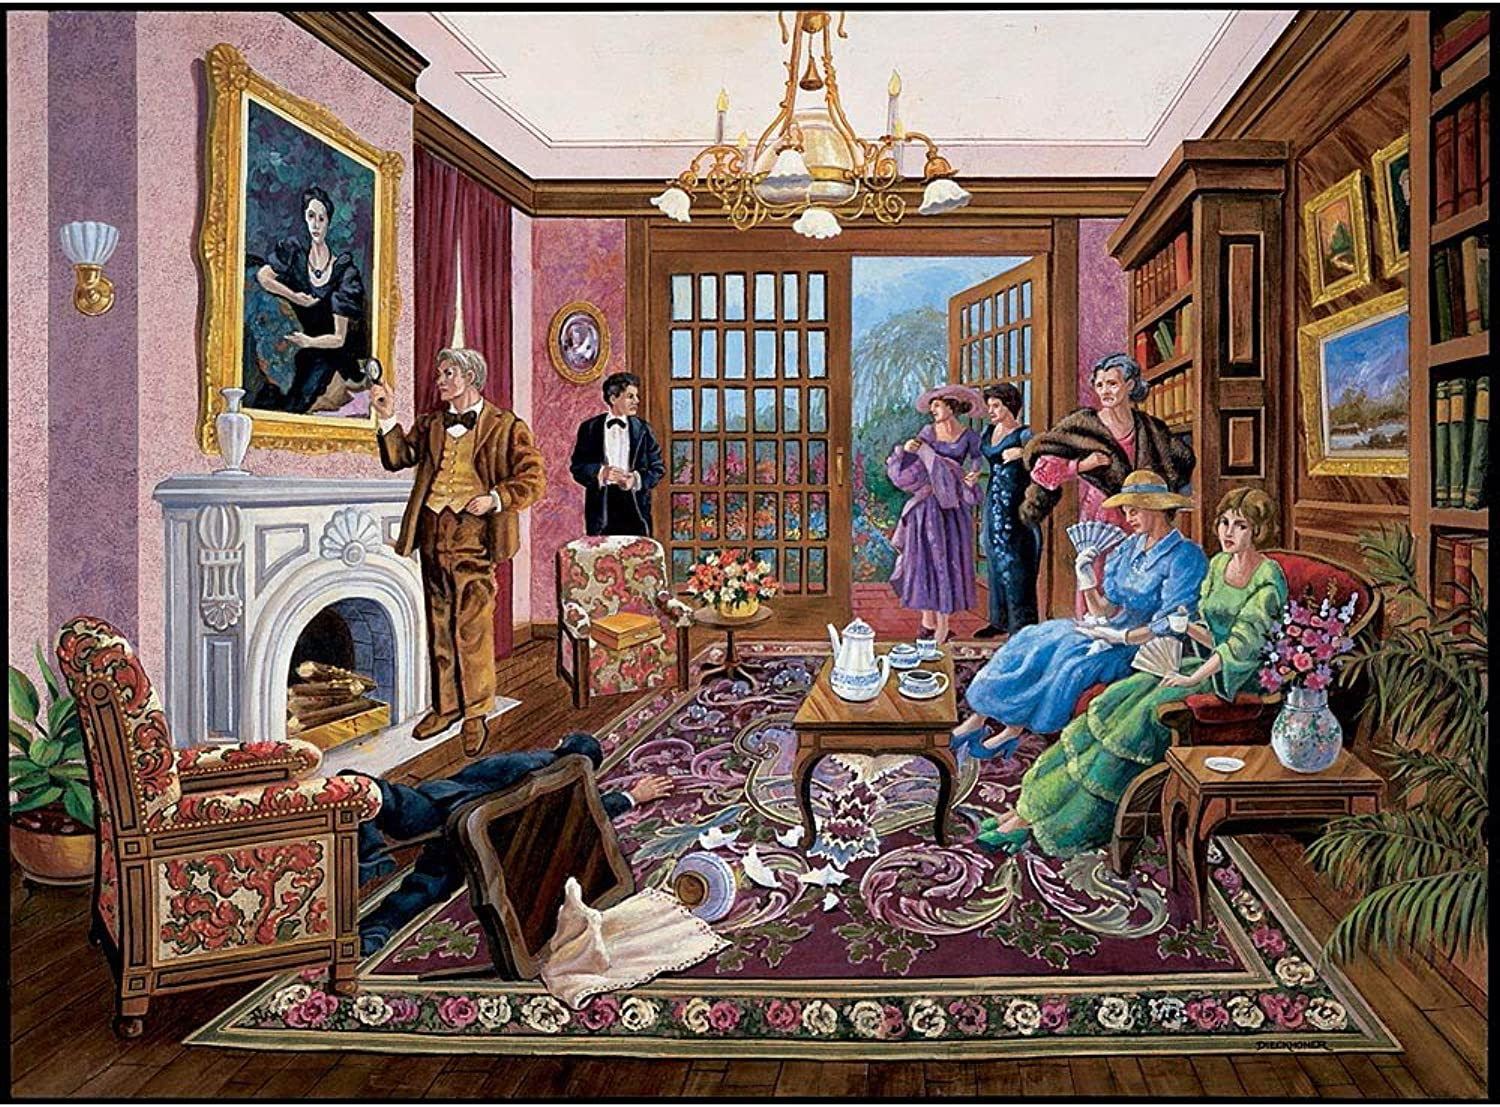 Bits and Pieces  1000 Piece Murder Mystery Puzzle  Murder at Bedford Manor by Artist Gene Dieckhoner  Solve The Mystery  1000 pc Jigsaw